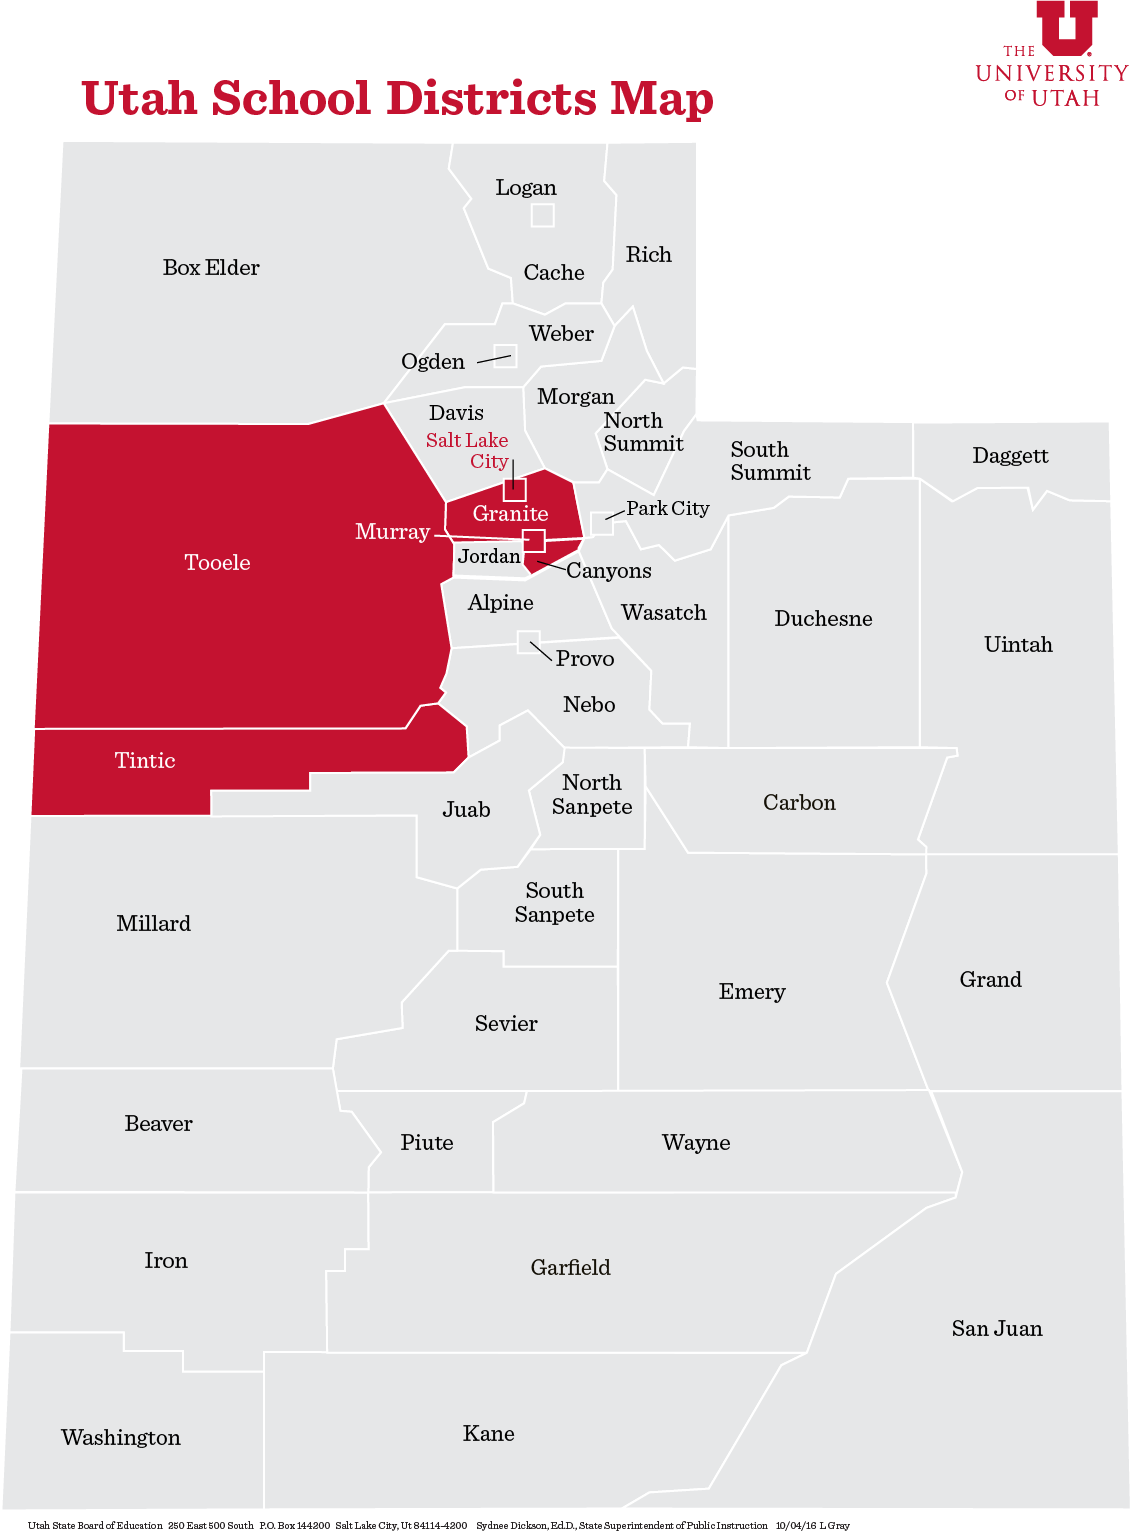 Utah School District map showing University of Utah's reach